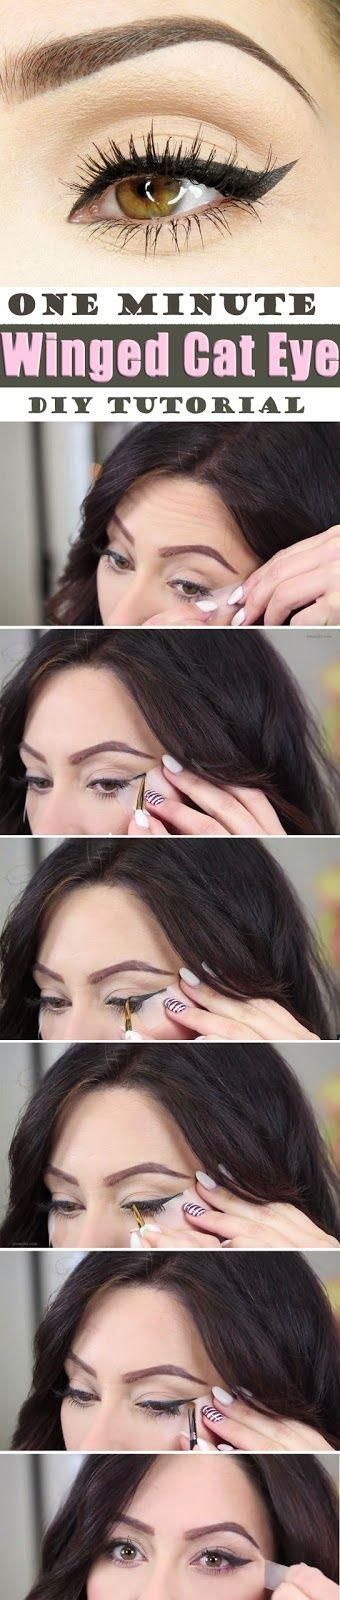 One Minute Surprising Winged Cat Eye DIY Tutorial